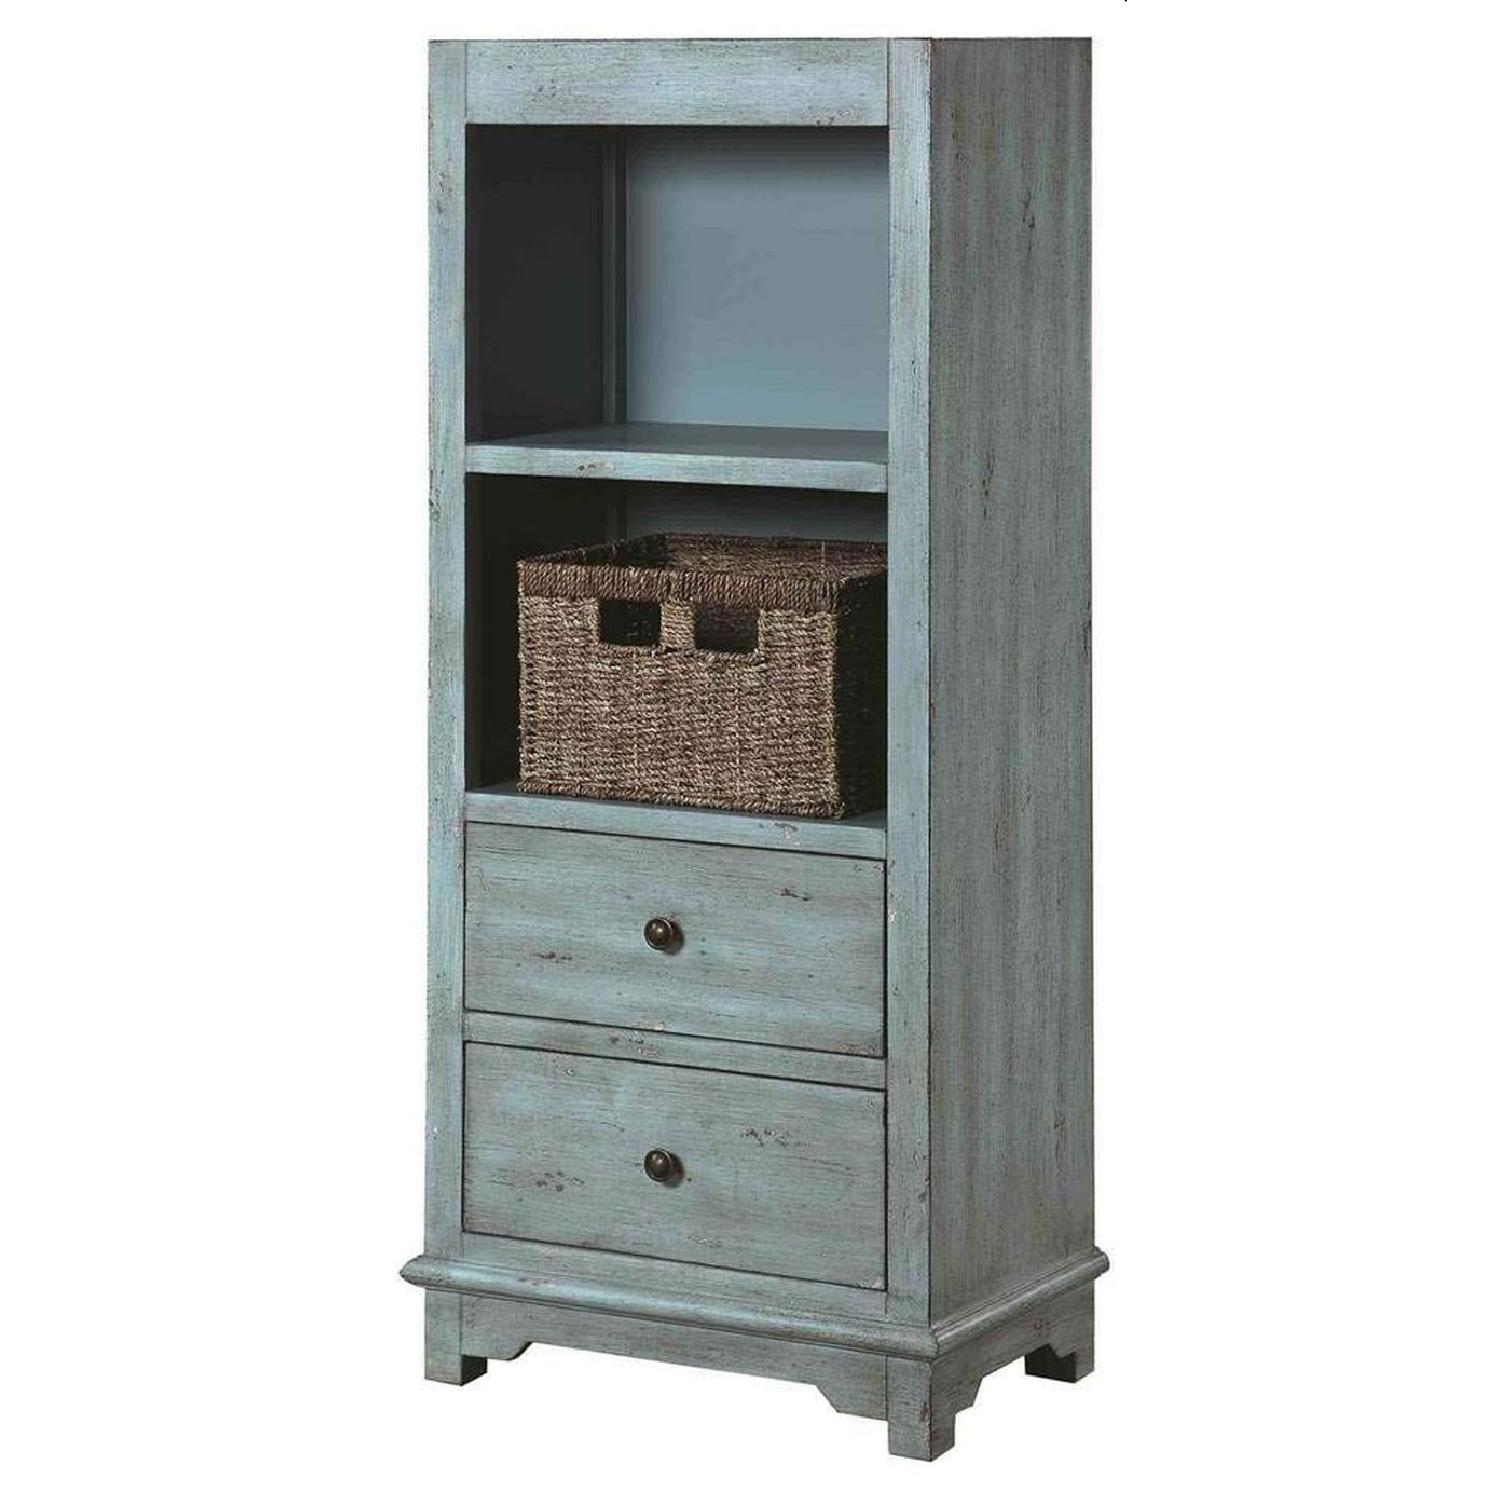 Country-Inspired Accent Cabinet In Light Blue Finish - image-4